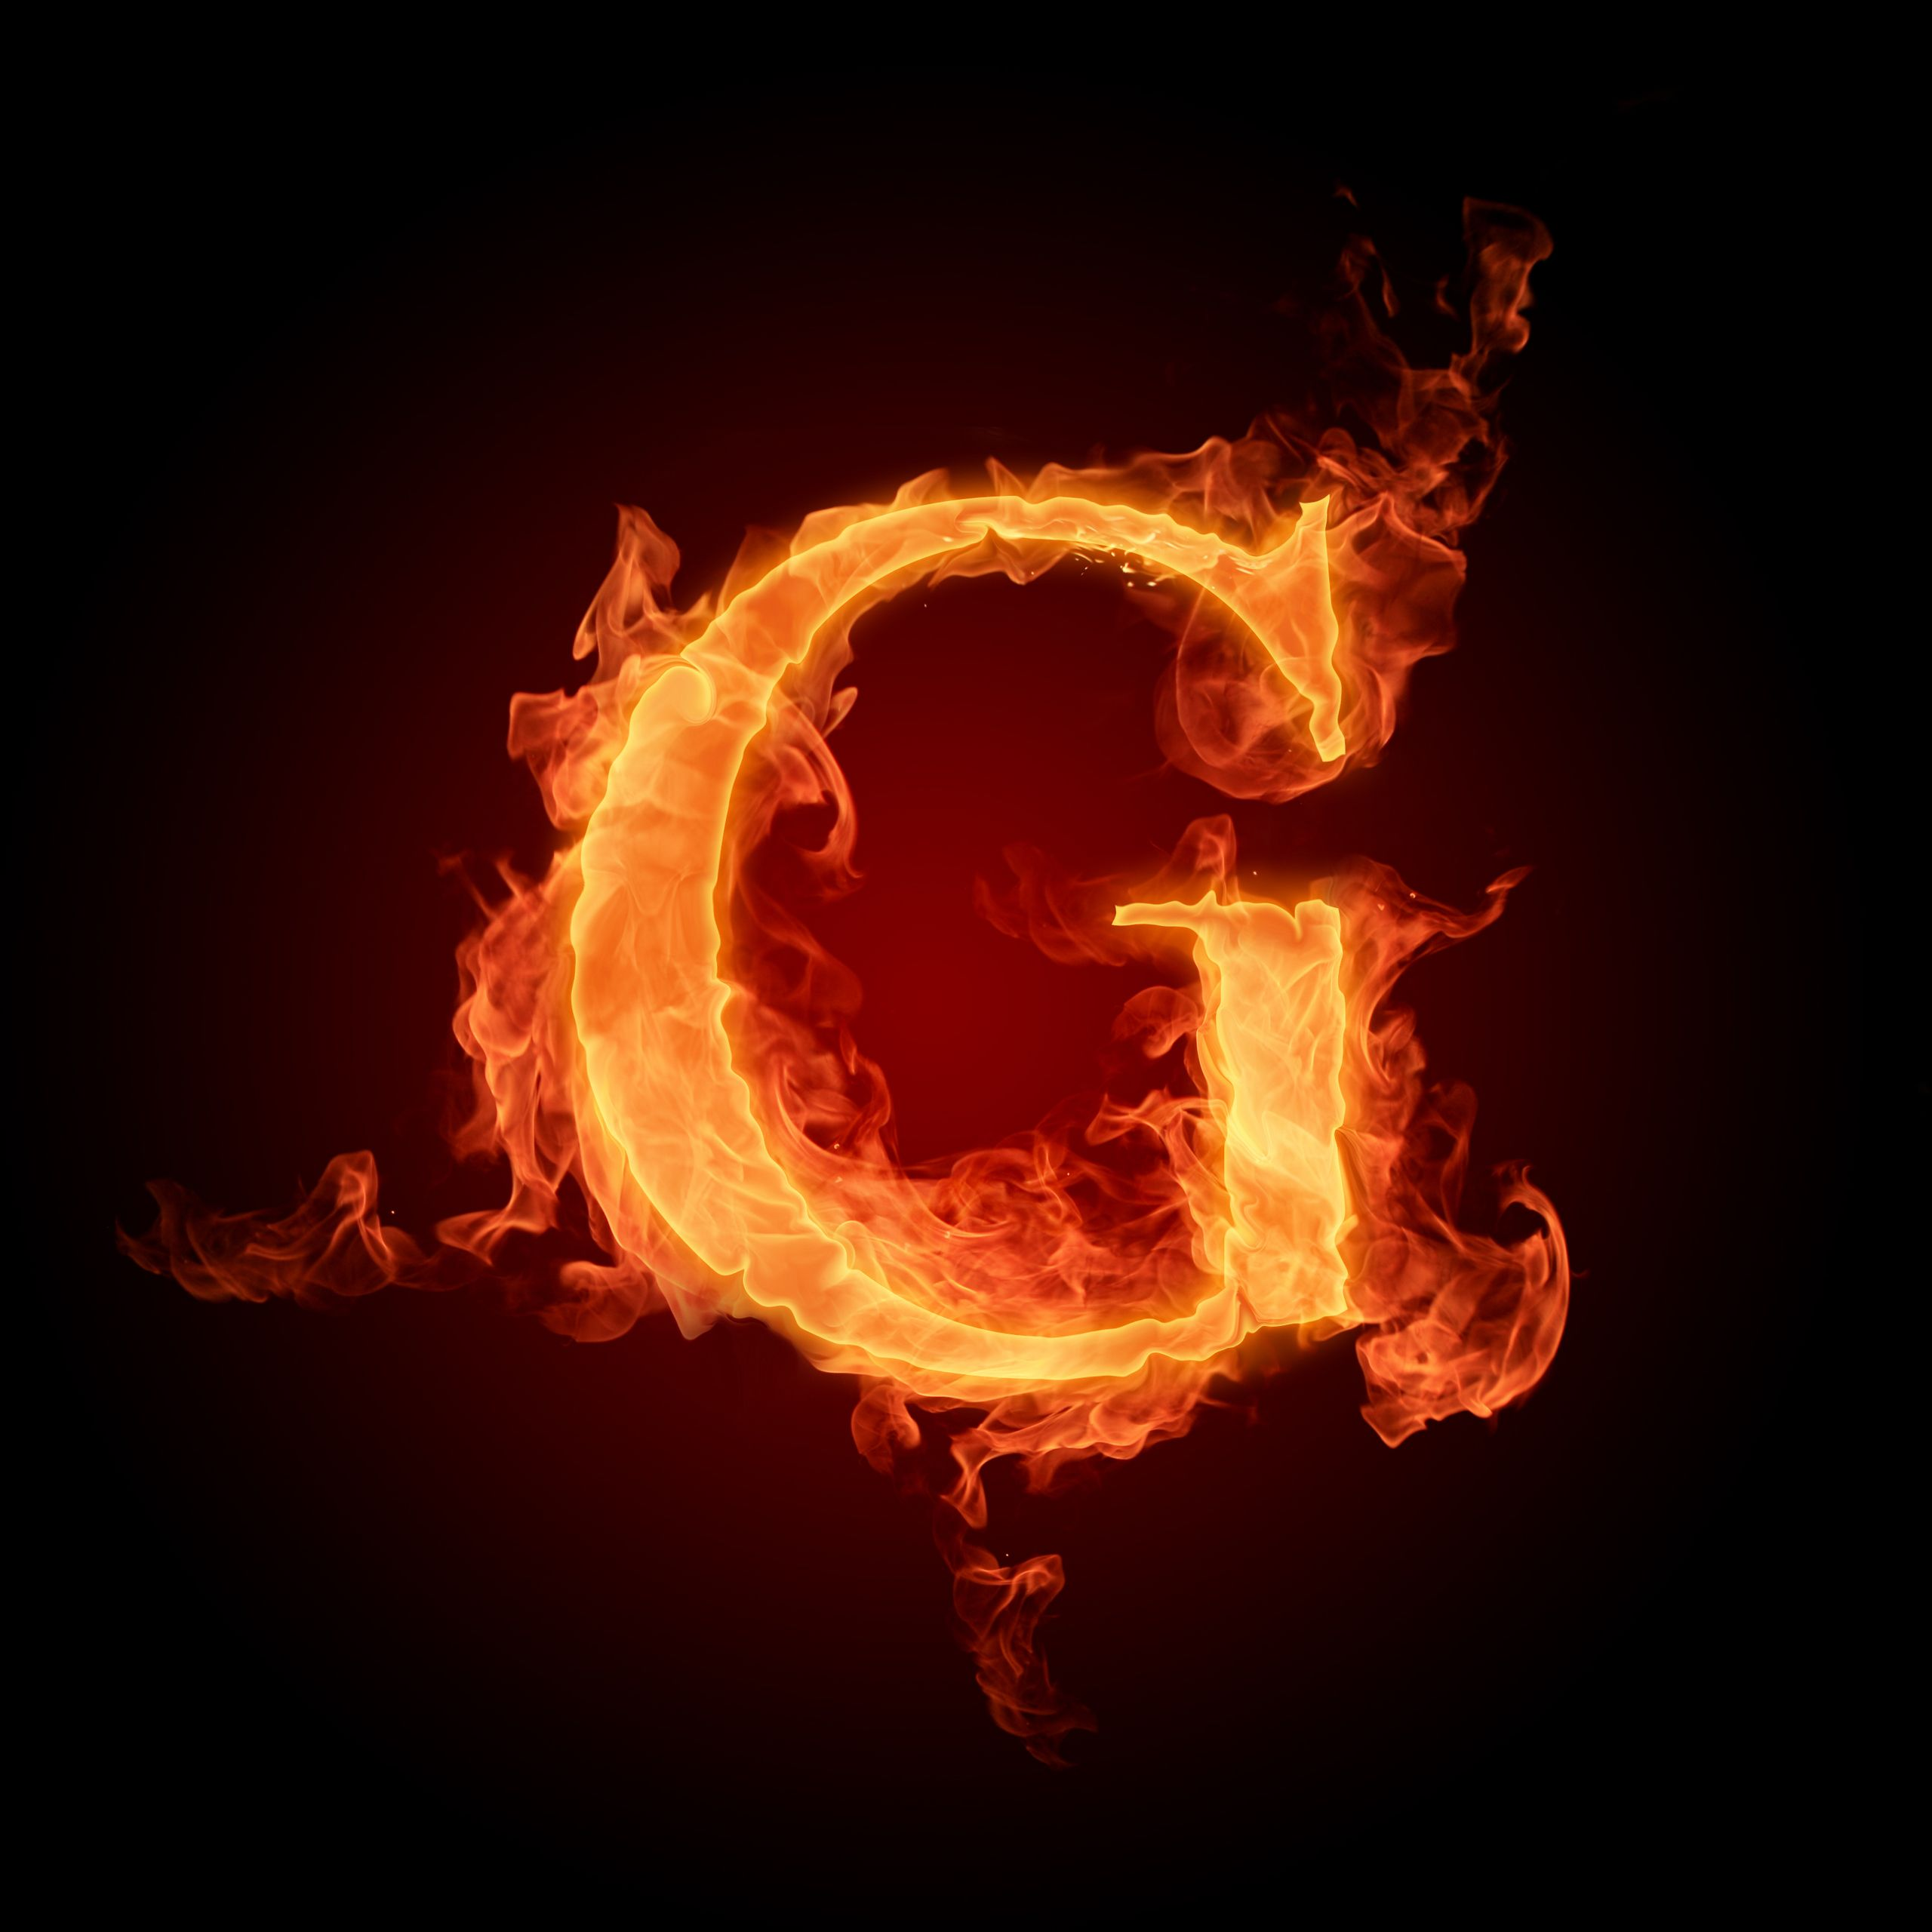 The Letter G images The letter G HD wallpaper and background   Best     The Letter G images The letter G HD wallpaper and background